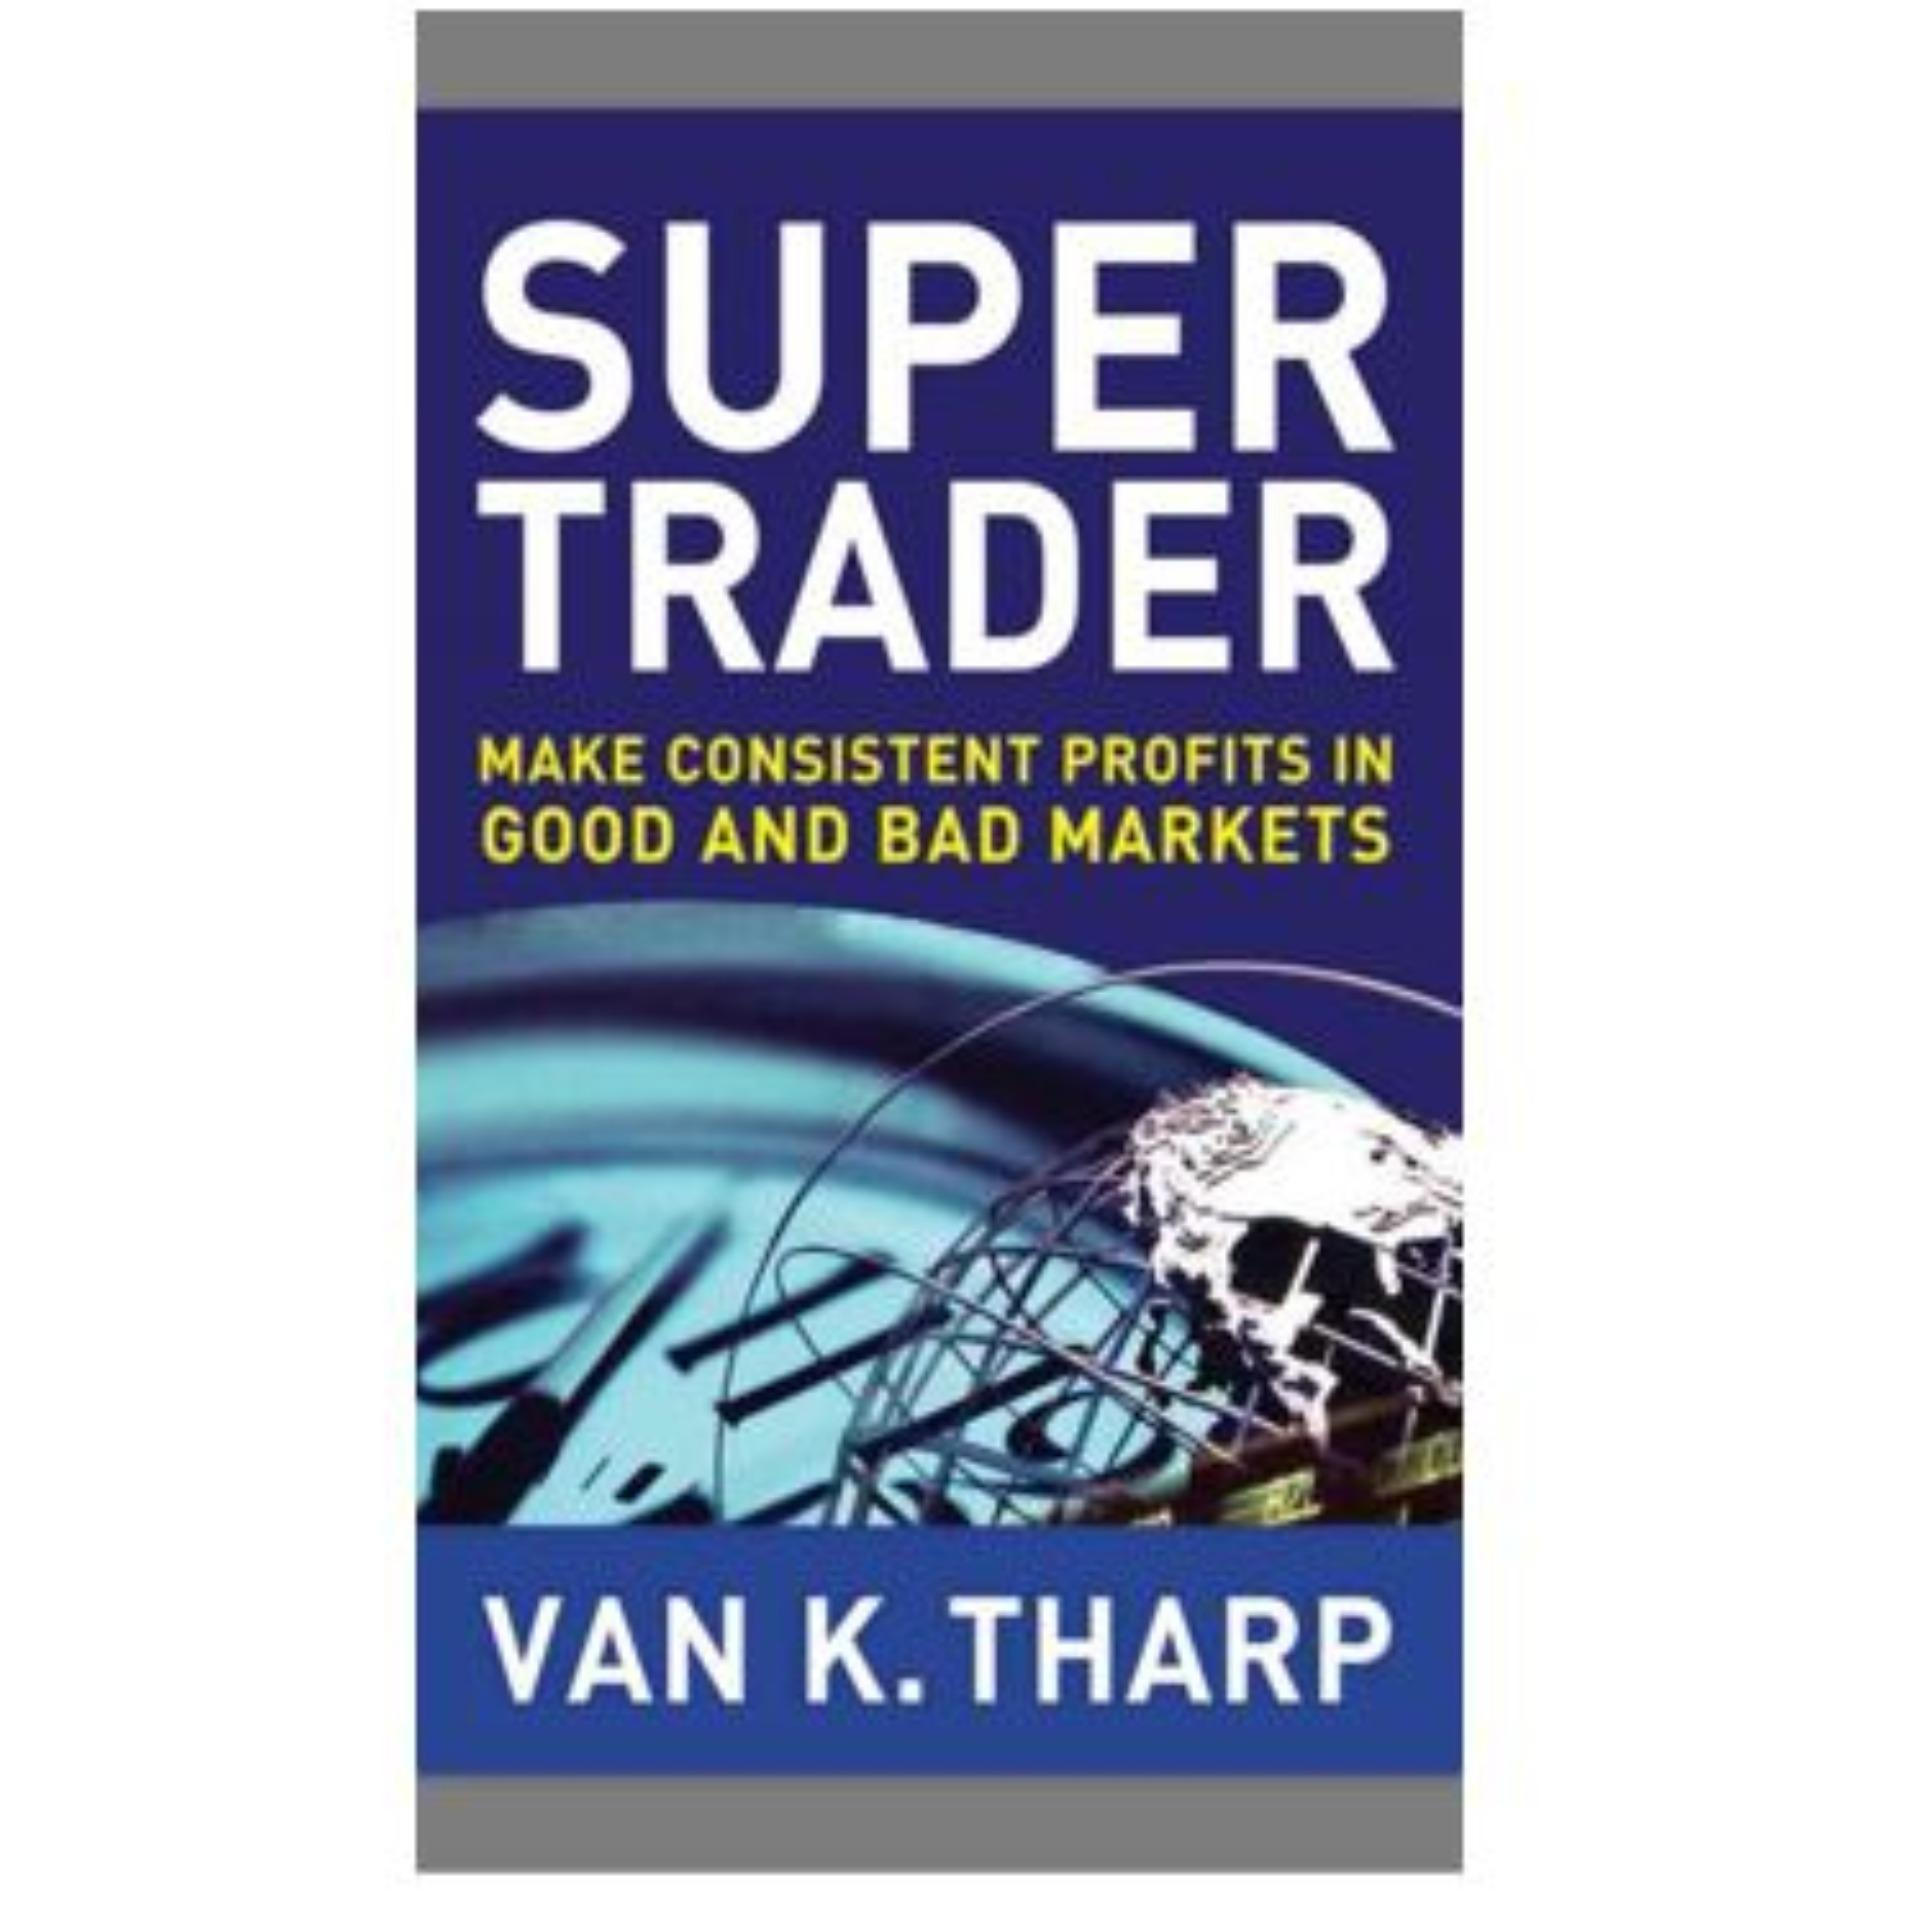 Super Trader: Make Consistent Profits in Good and Bad Markets eBook by Van K. Tharp